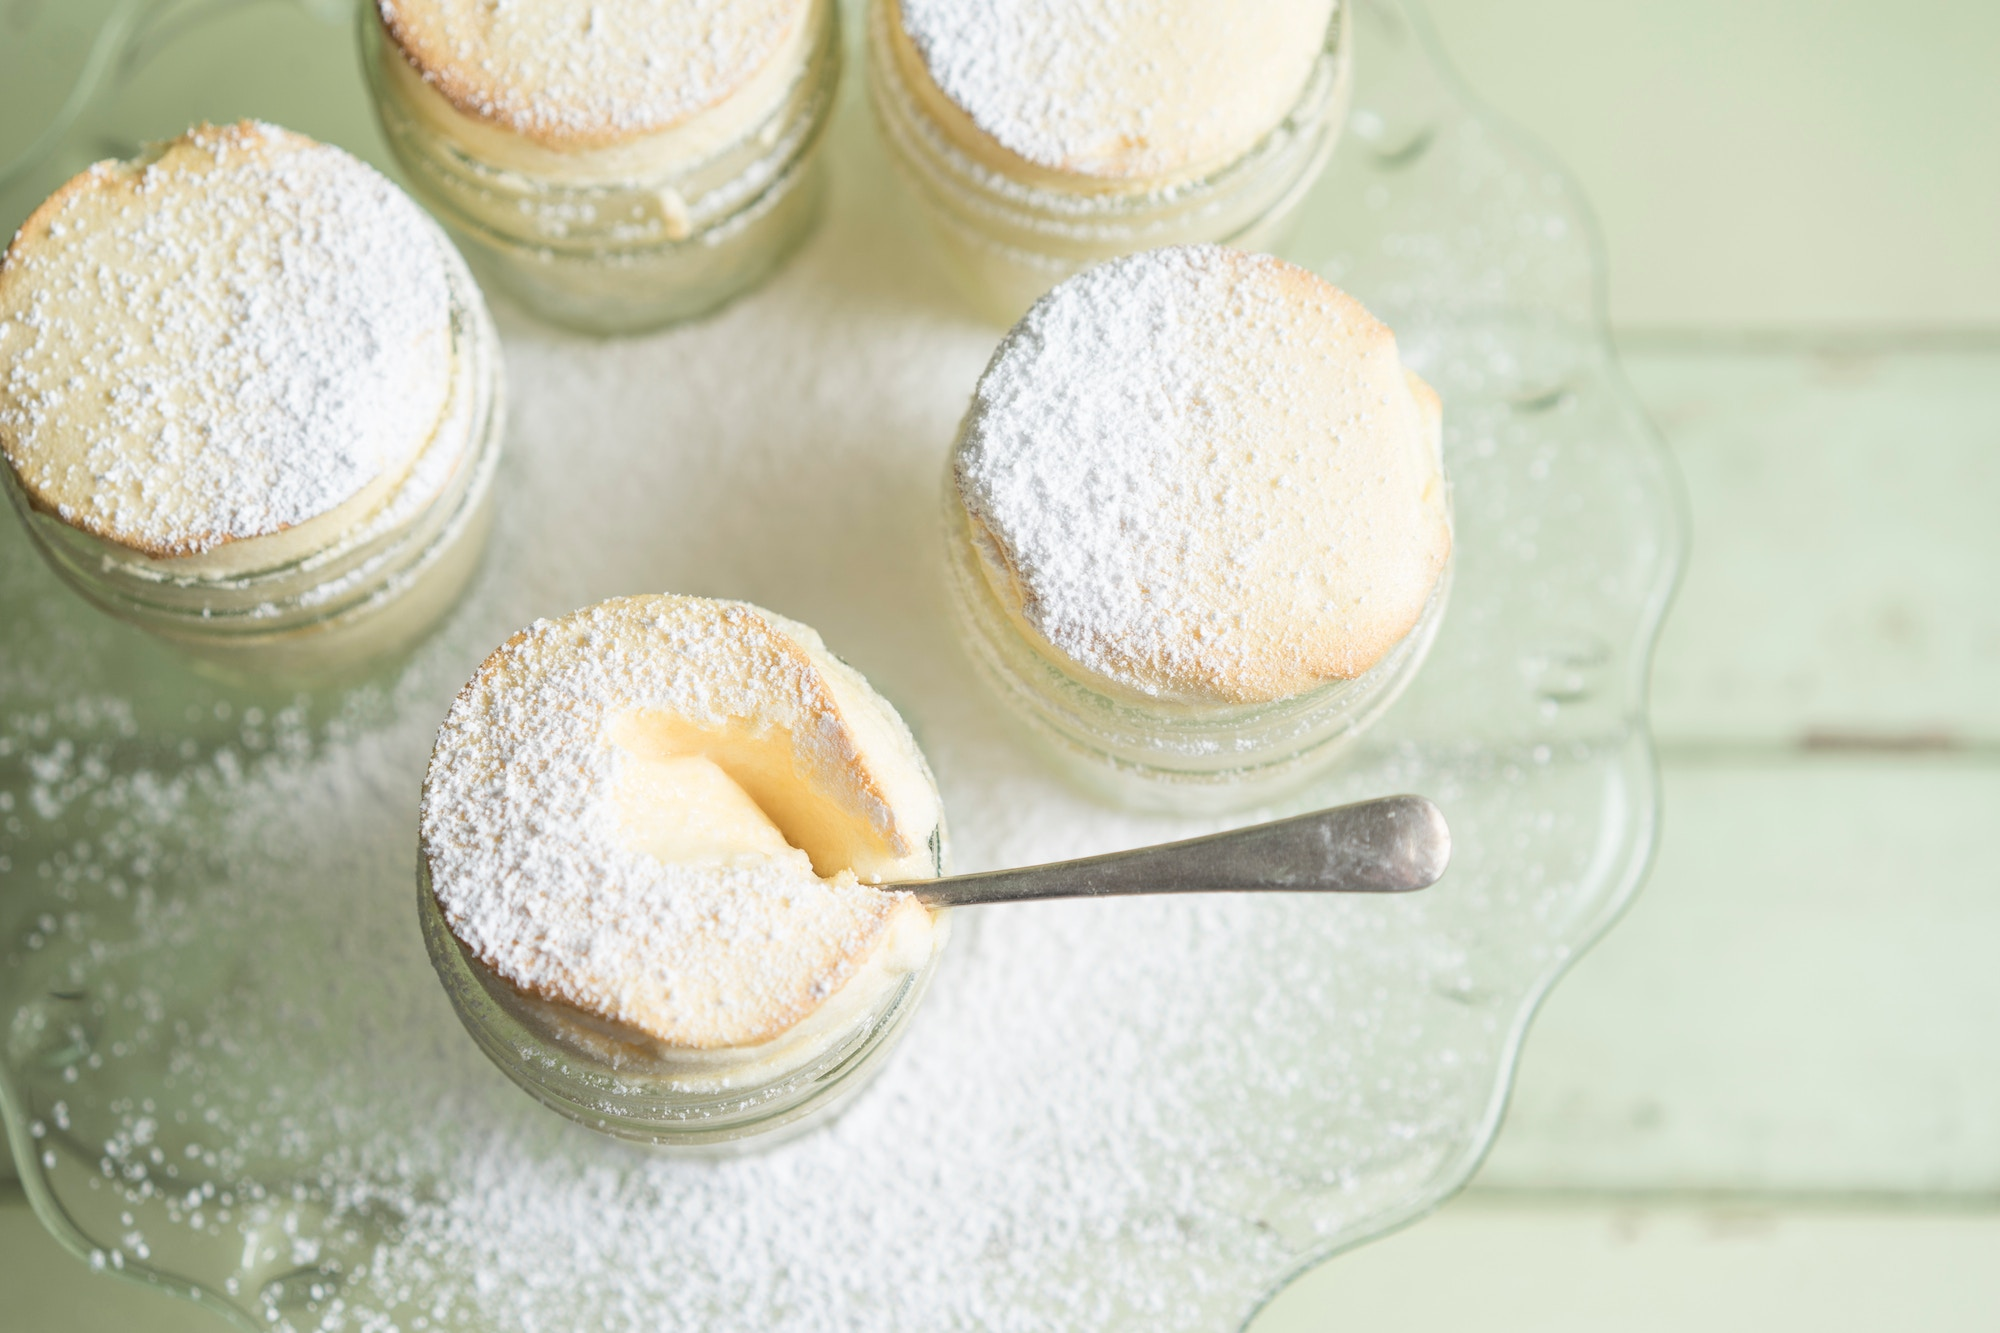 HiP Paris Blog rounds up where to eat the best souffle in Paris, like these lightly-dusted pots of souffle.